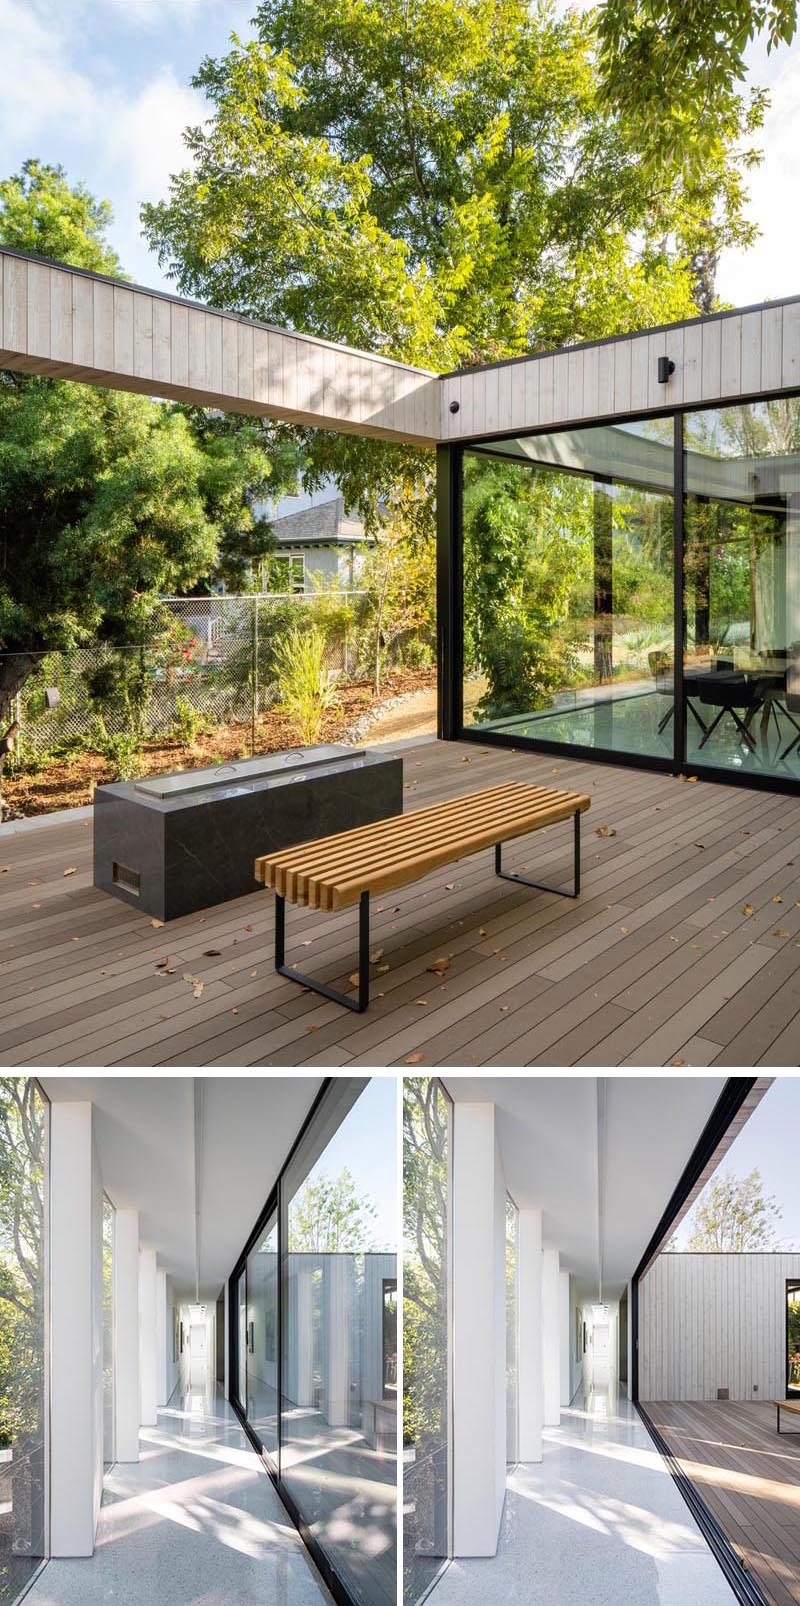 The glass walls in the dining room and hallway of this modern house slide open to give access to a deck that's home to an outdoor fire. #GlassWalls #Deck #Hallway #Windows